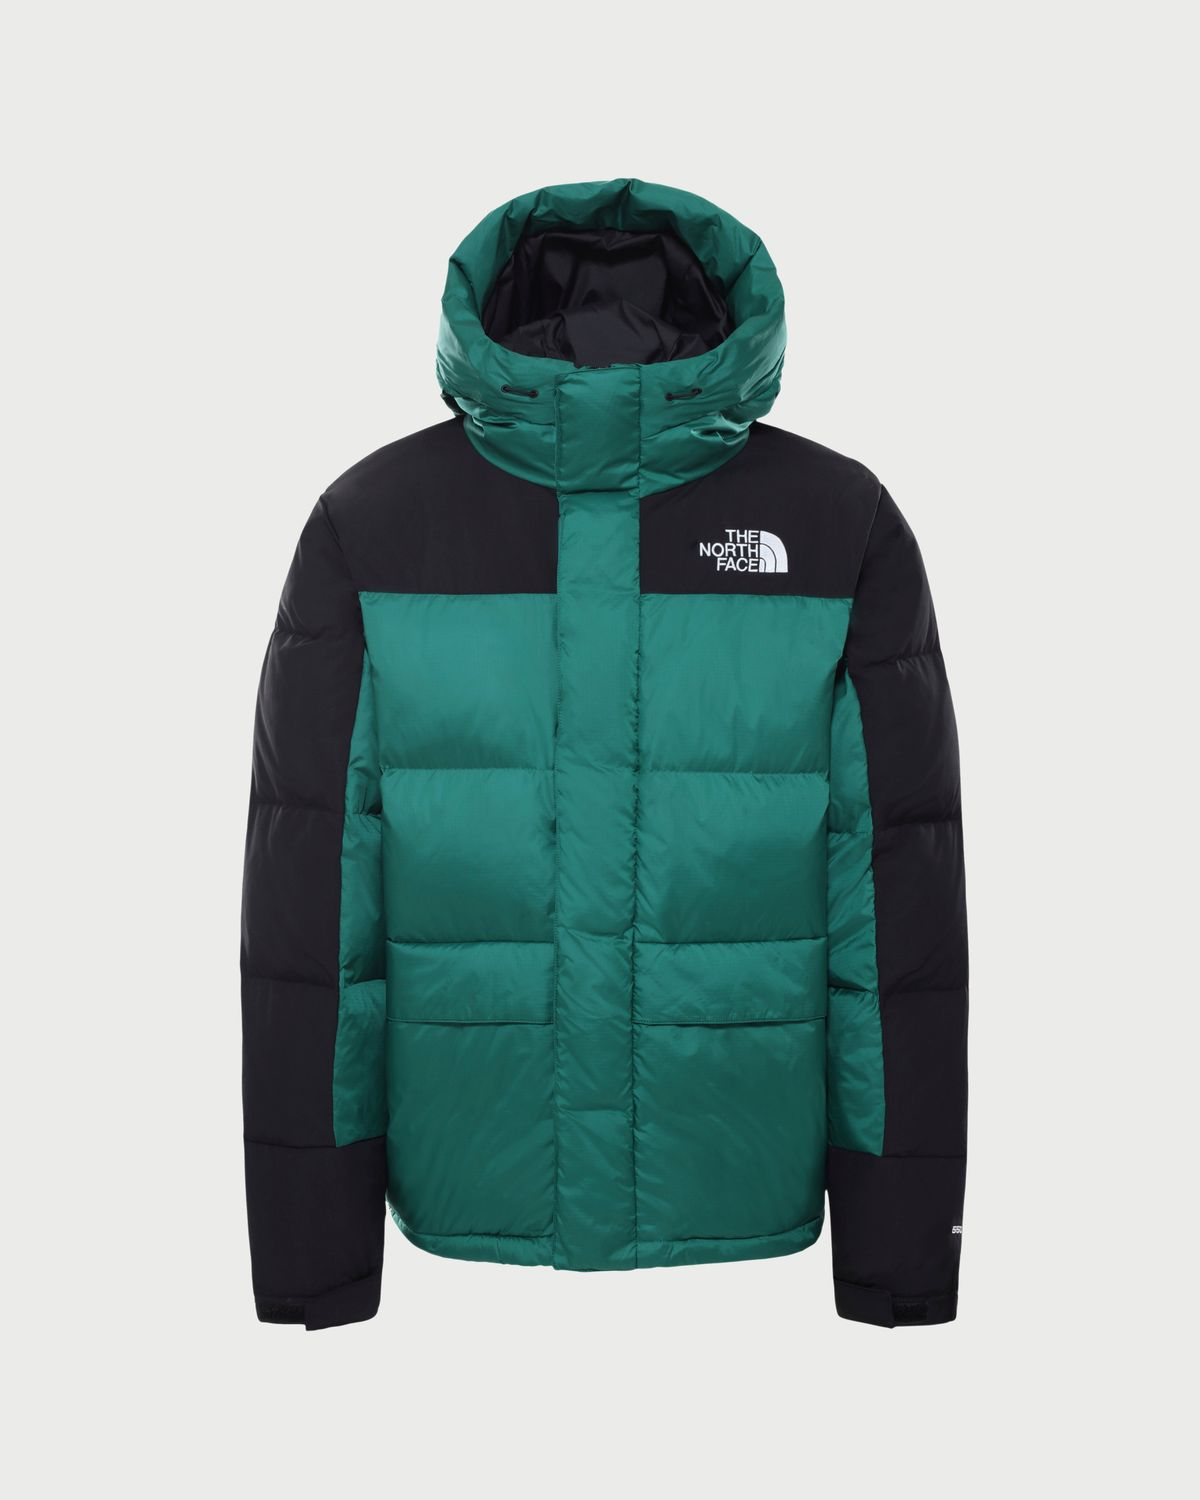 The North Face — Himalayan Down Jacket Peak Evergreen Unisex - Image 1